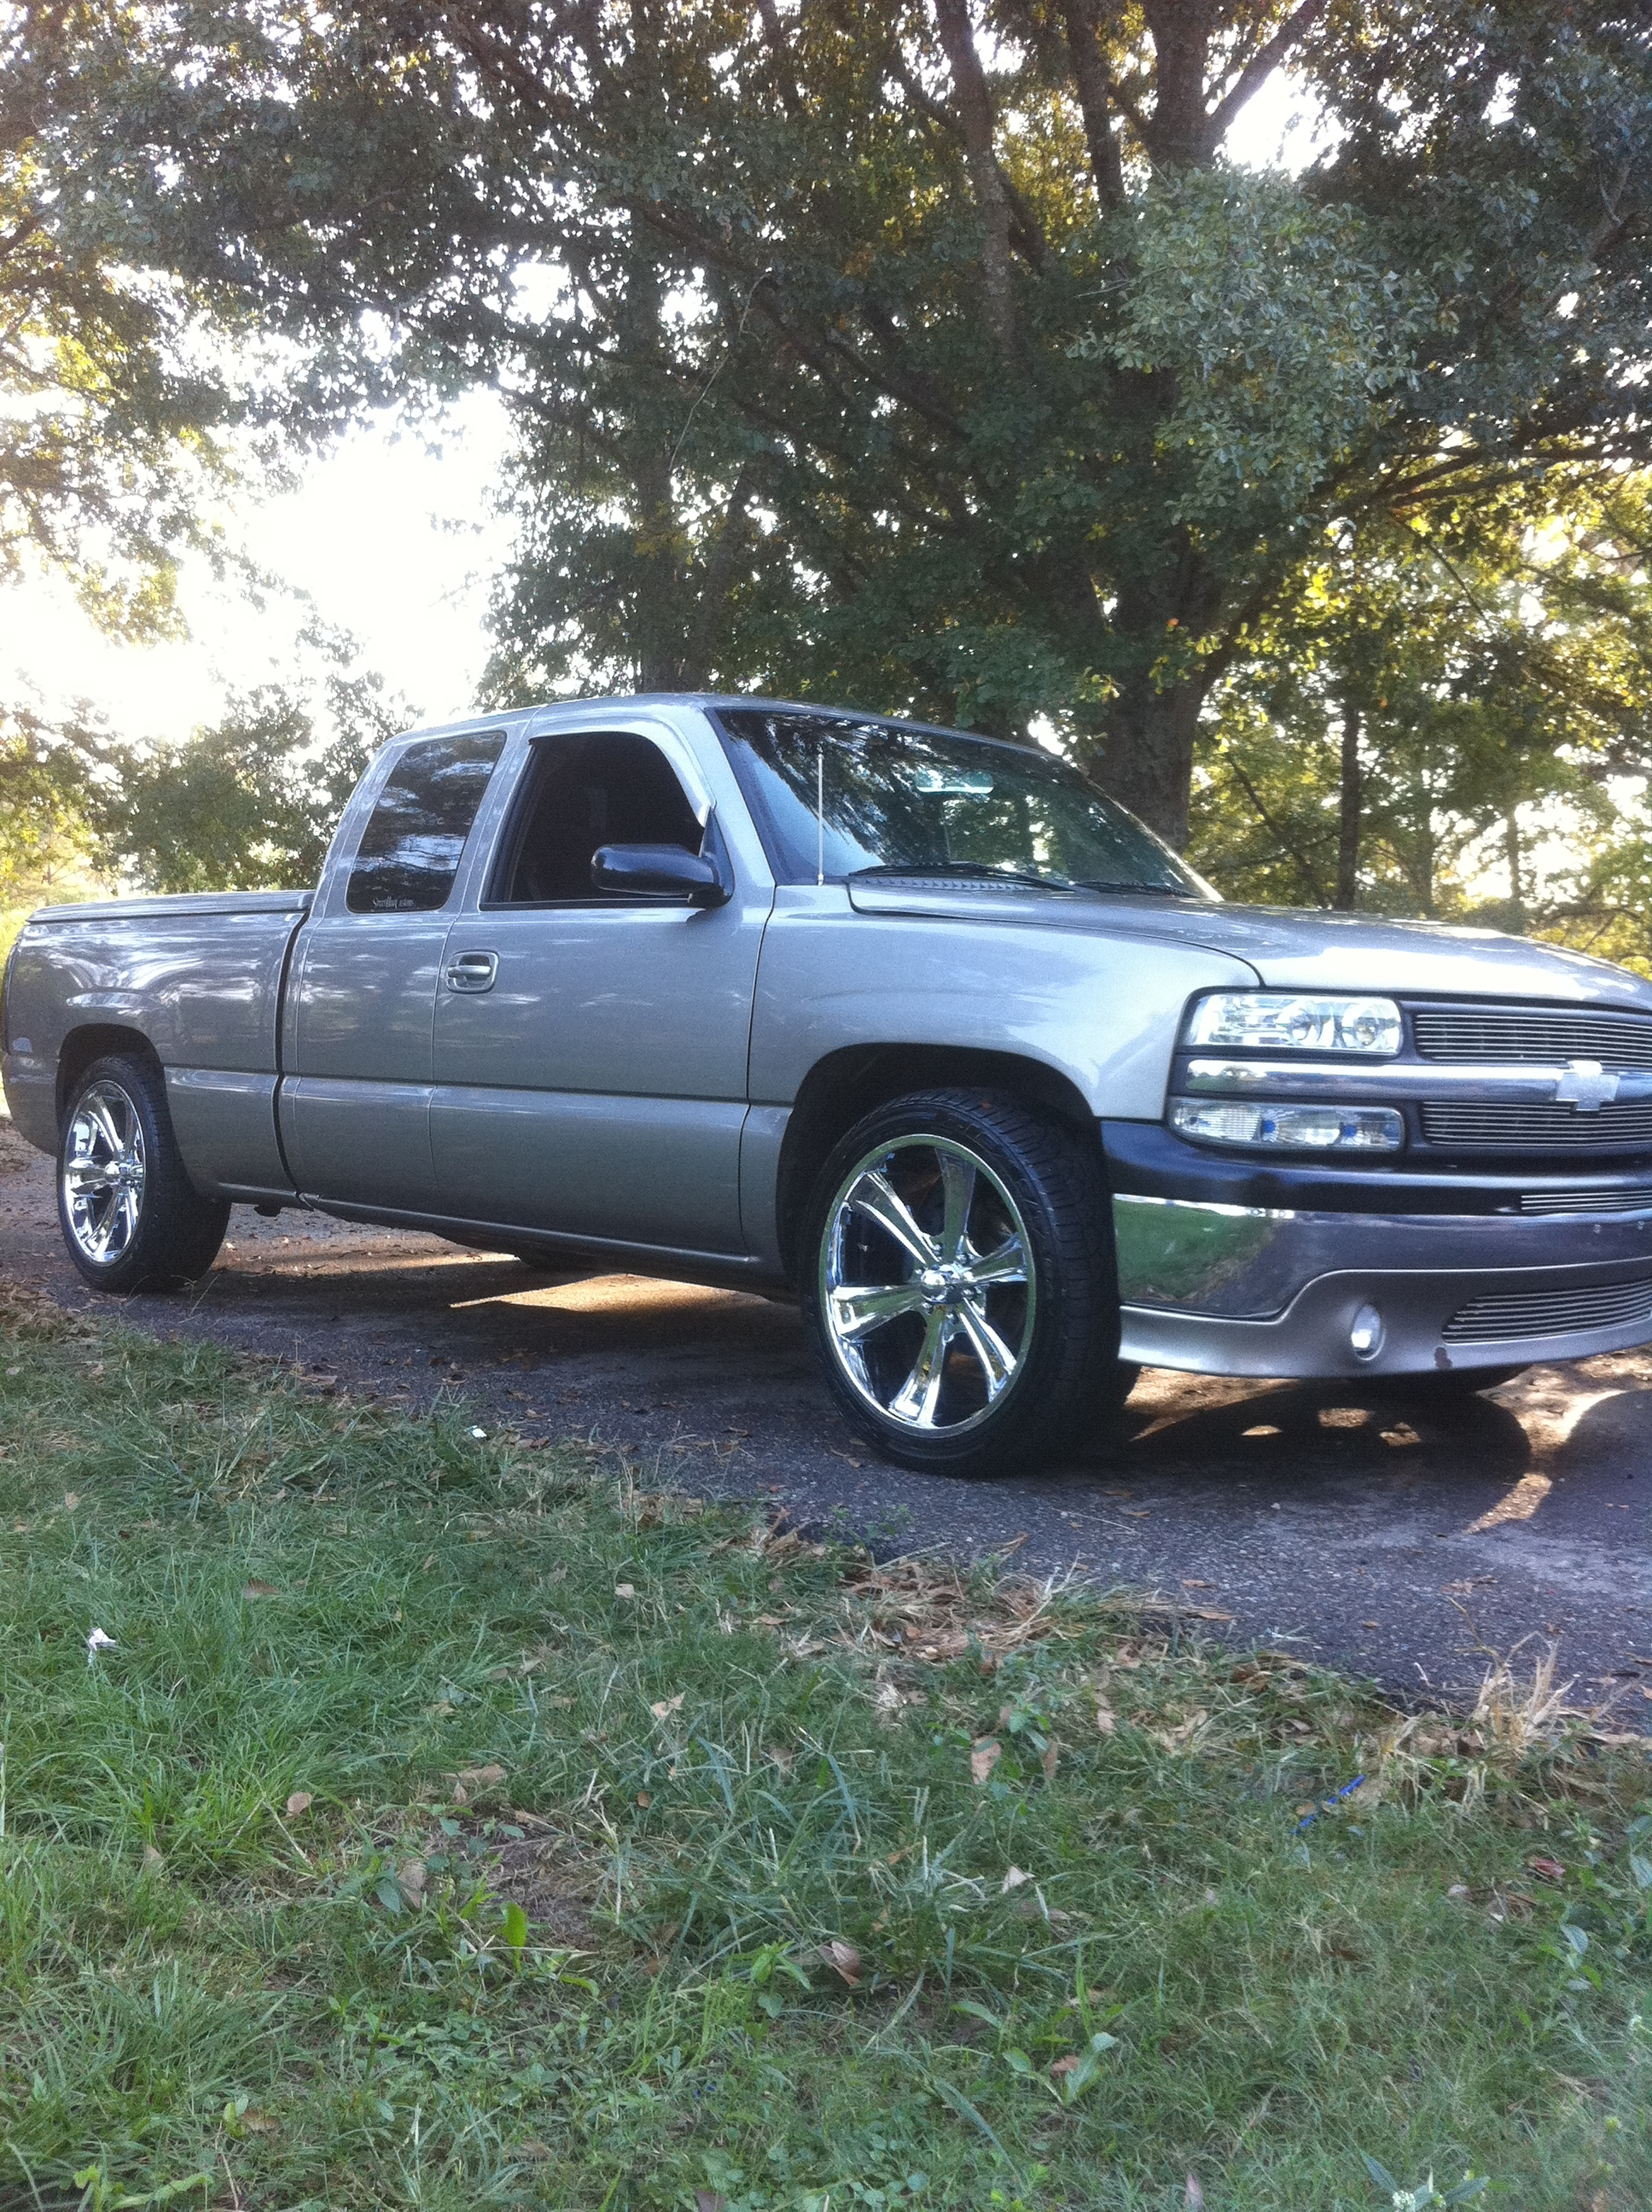 chevyspeedqueen 2001 chevrolet silverado 1500 extended. Black Bedroom Furniture Sets. Home Design Ideas